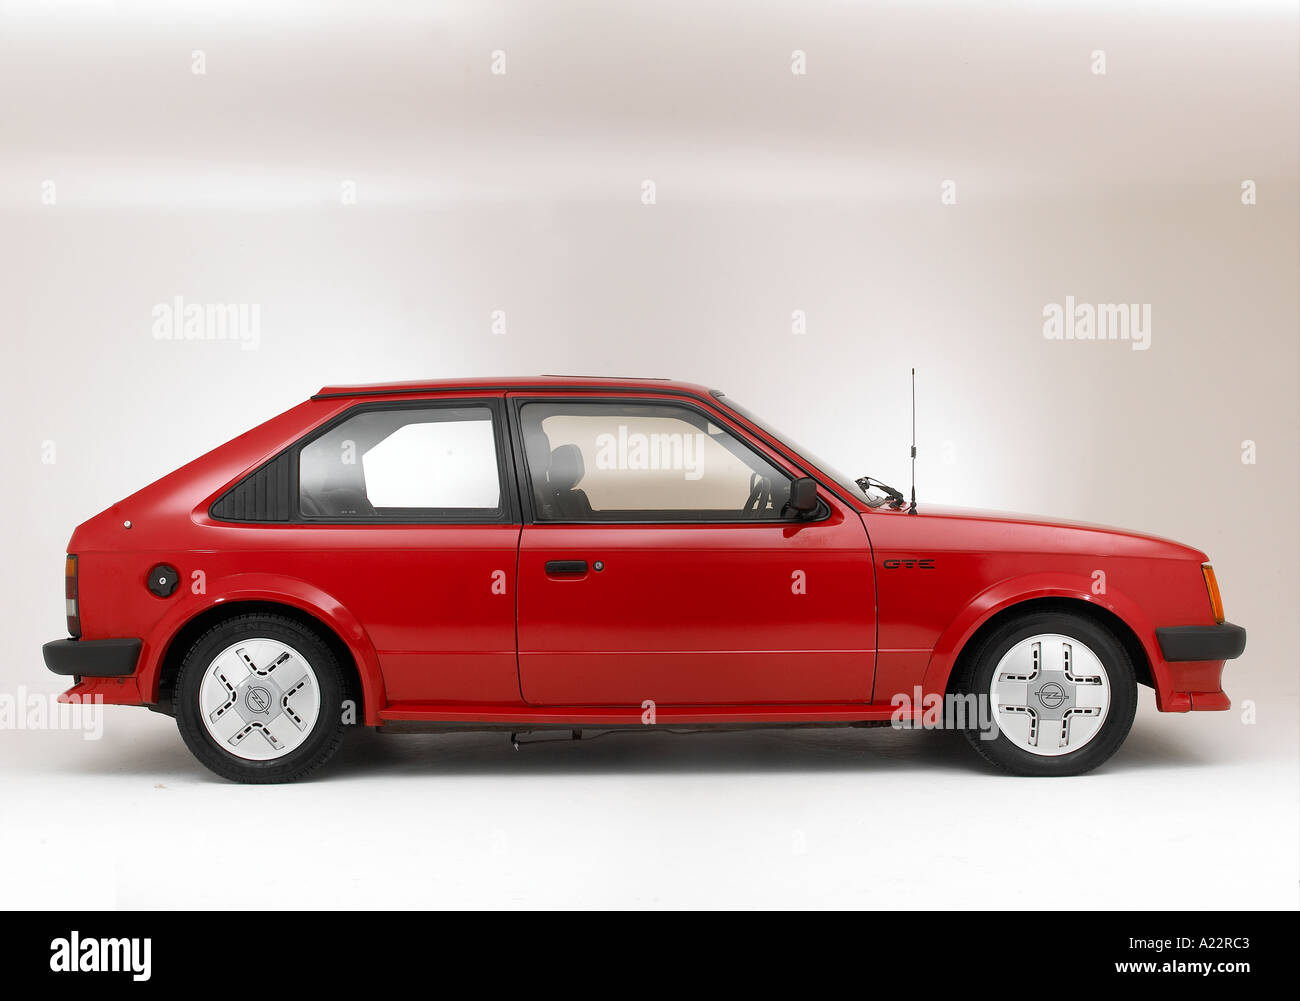 1983 opel kadett gte stock photo royalty free image 3391426 alamy. Black Bedroom Furniture Sets. Home Design Ideas